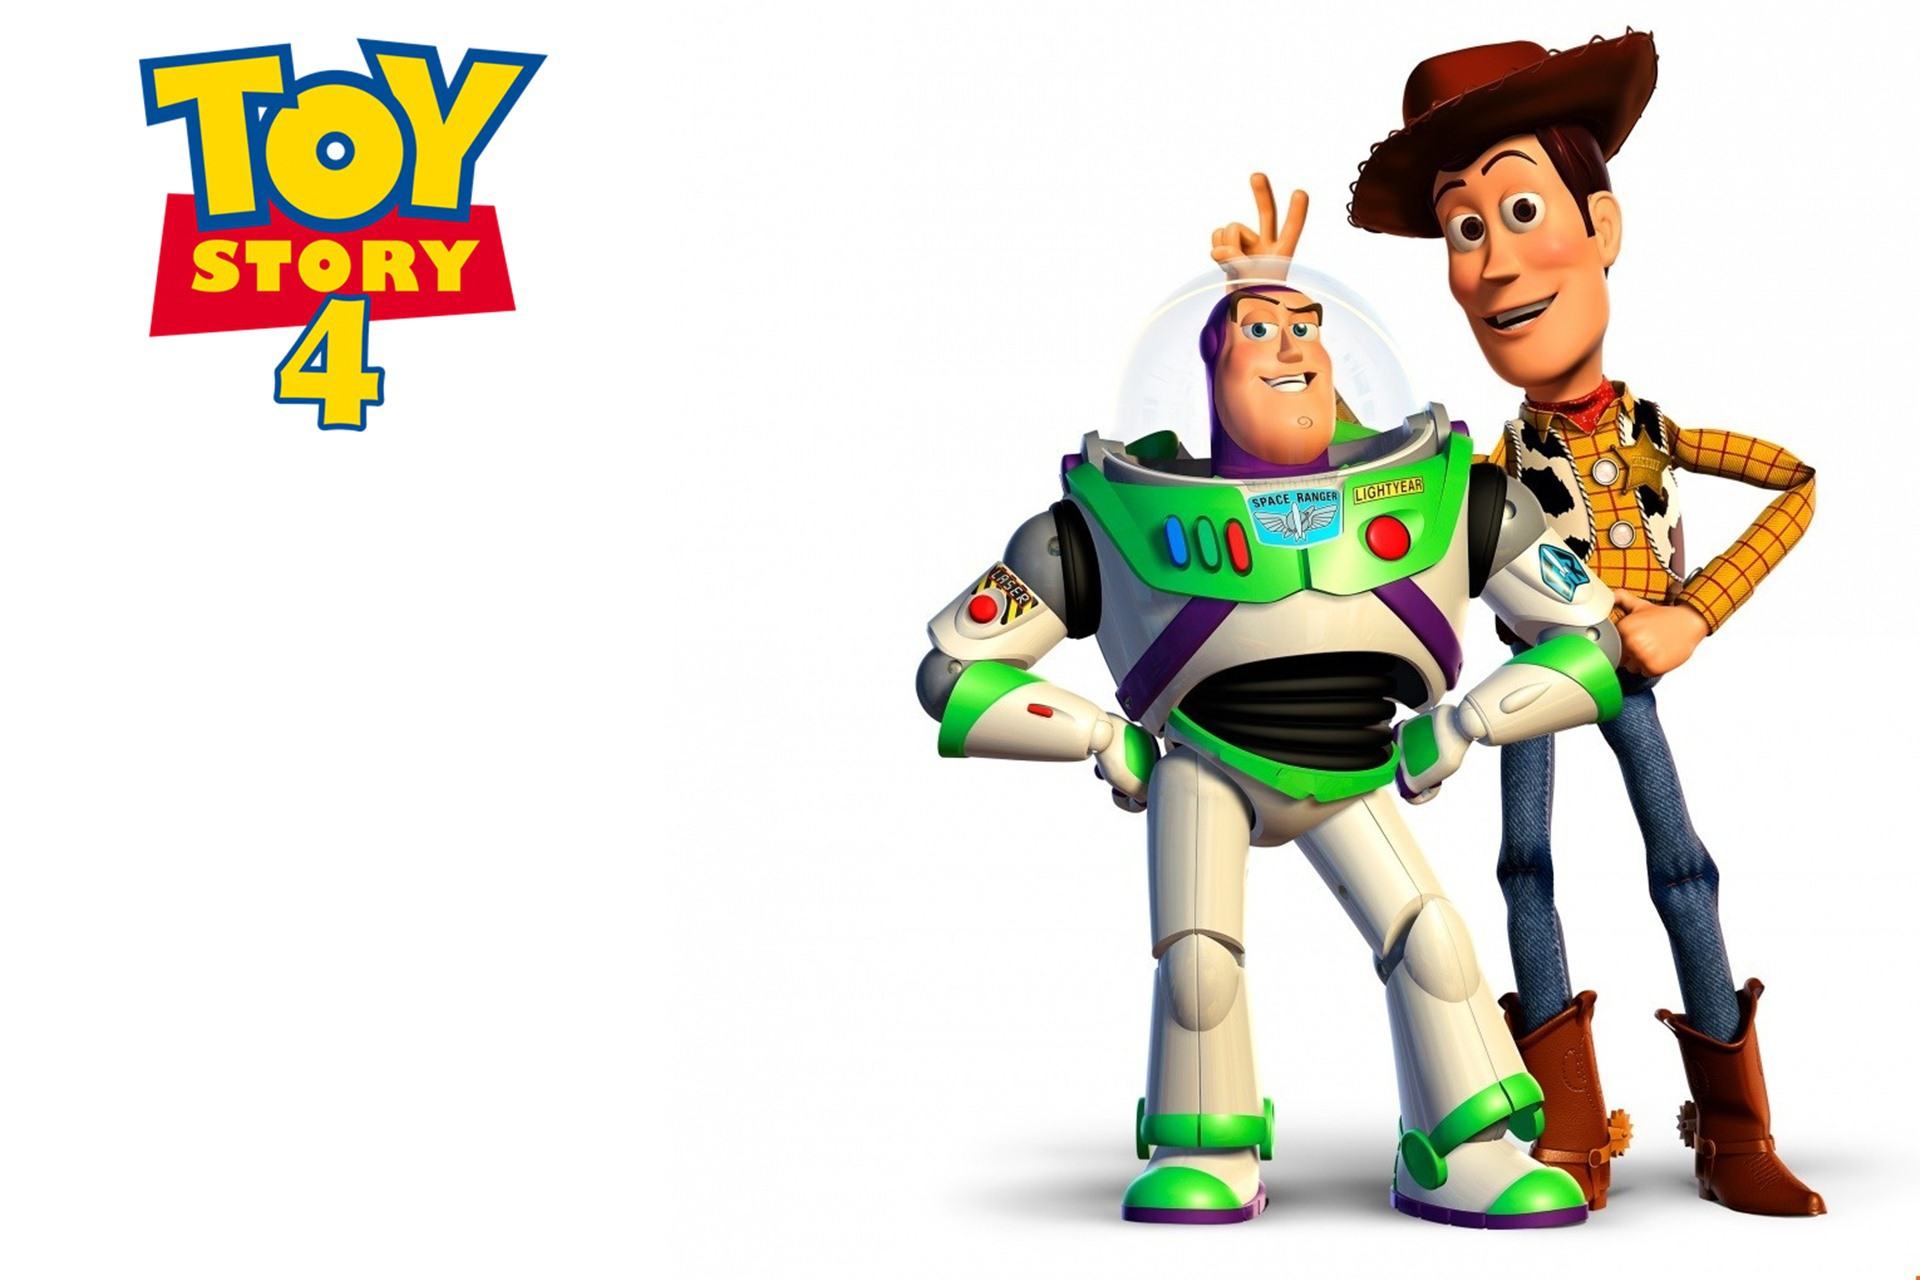 Toy Story 4 Hd Wallpaper